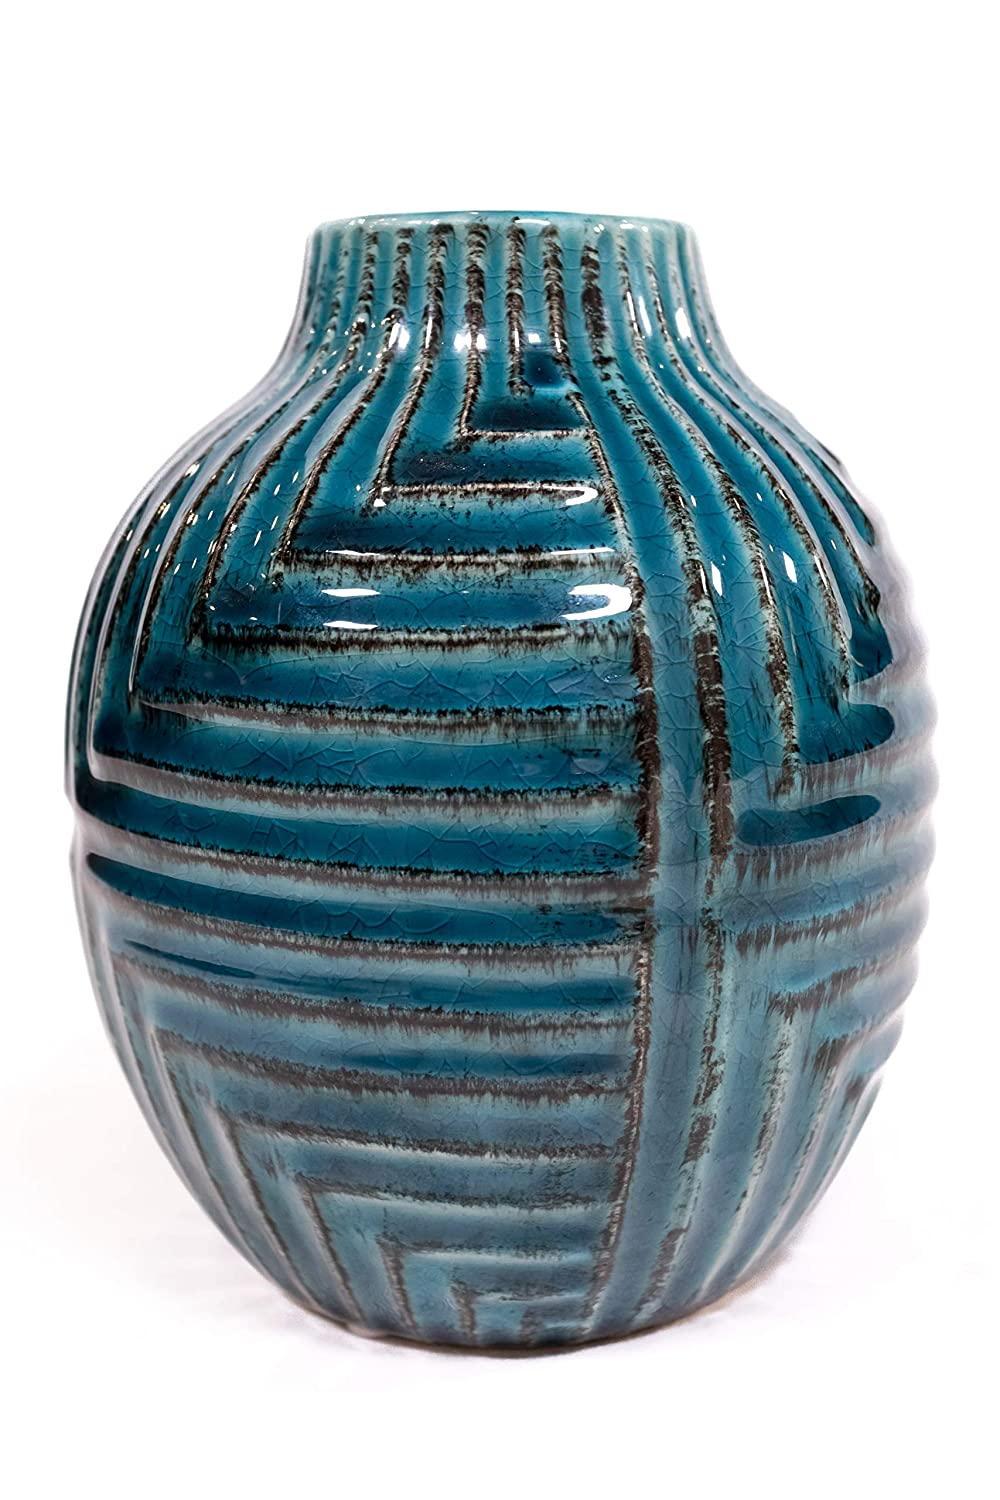 Moonkey Contemporary Ceramic Home Decor Hand Finished Colorful Vase (5W, 5D, 5.75H),Ideal Gift for Wedding, Special Occasion, Dried Floral Arrangement, Office, Spa,